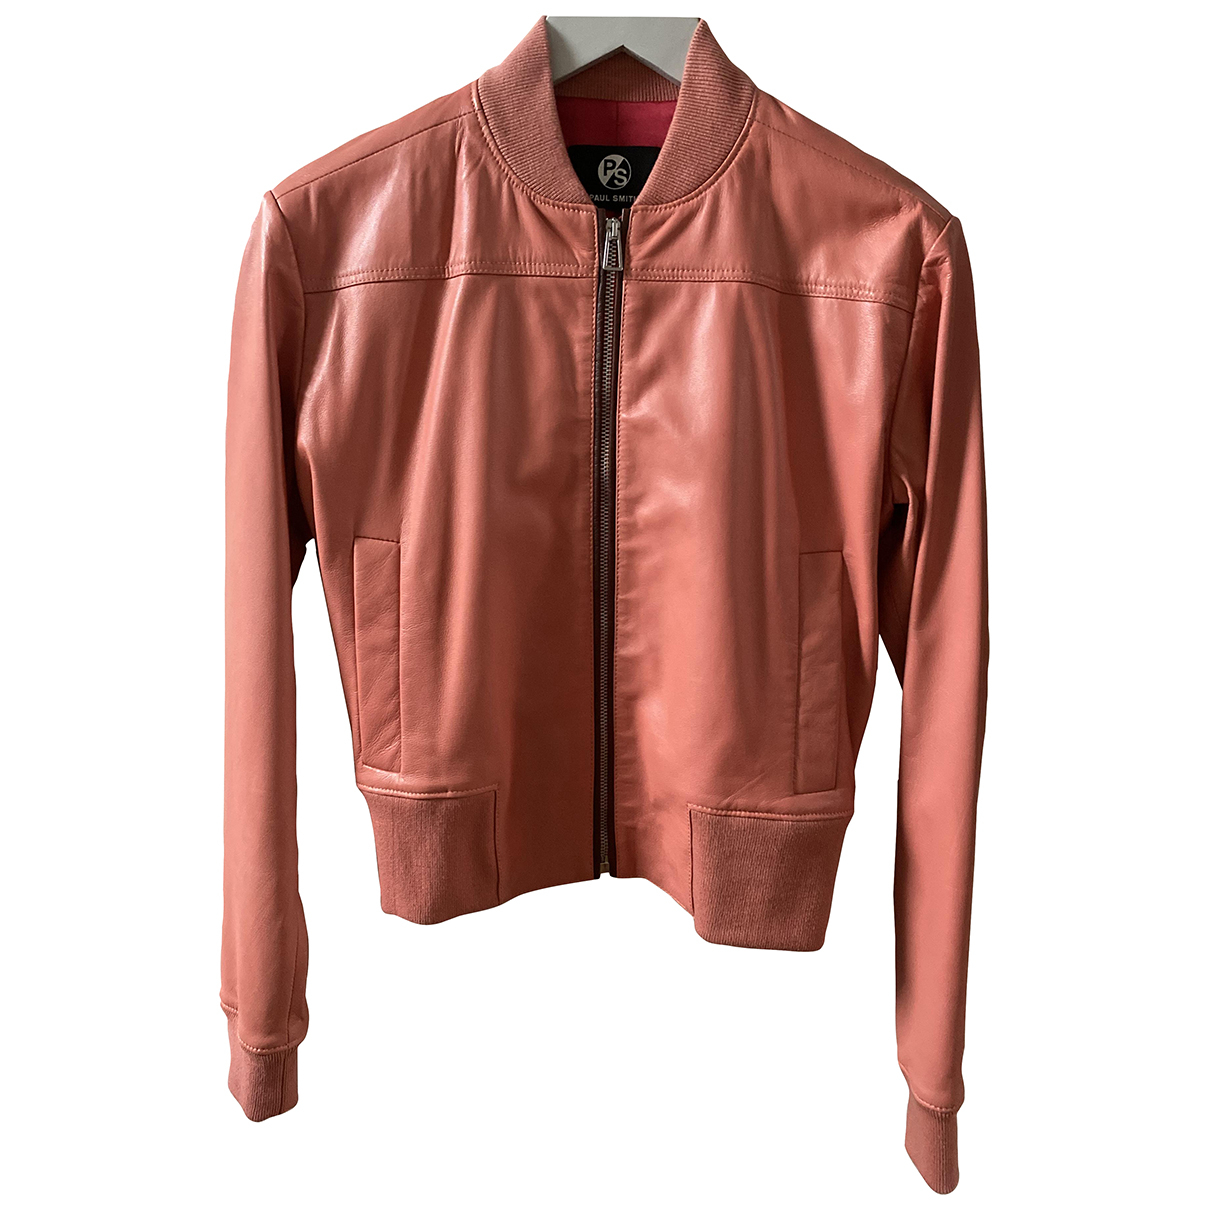 Paul Smith N Pink Leather Leather jacket for Women 36 FR